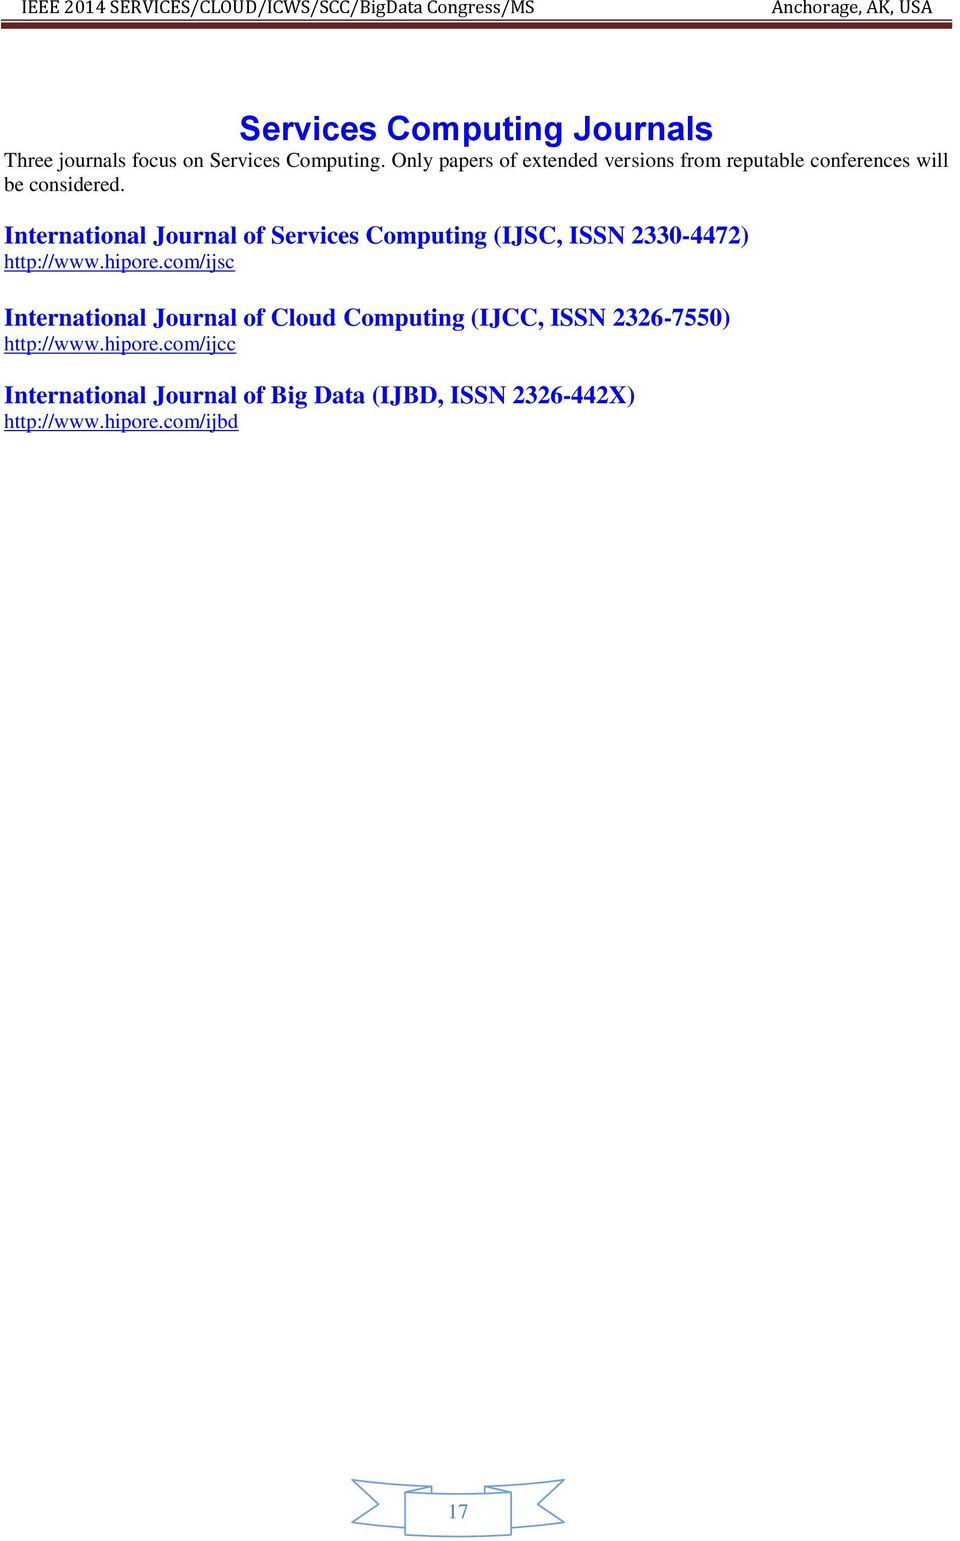 International Journal of Services Computing (IJSC, ISSN 2330-4472) http://www.hipore.